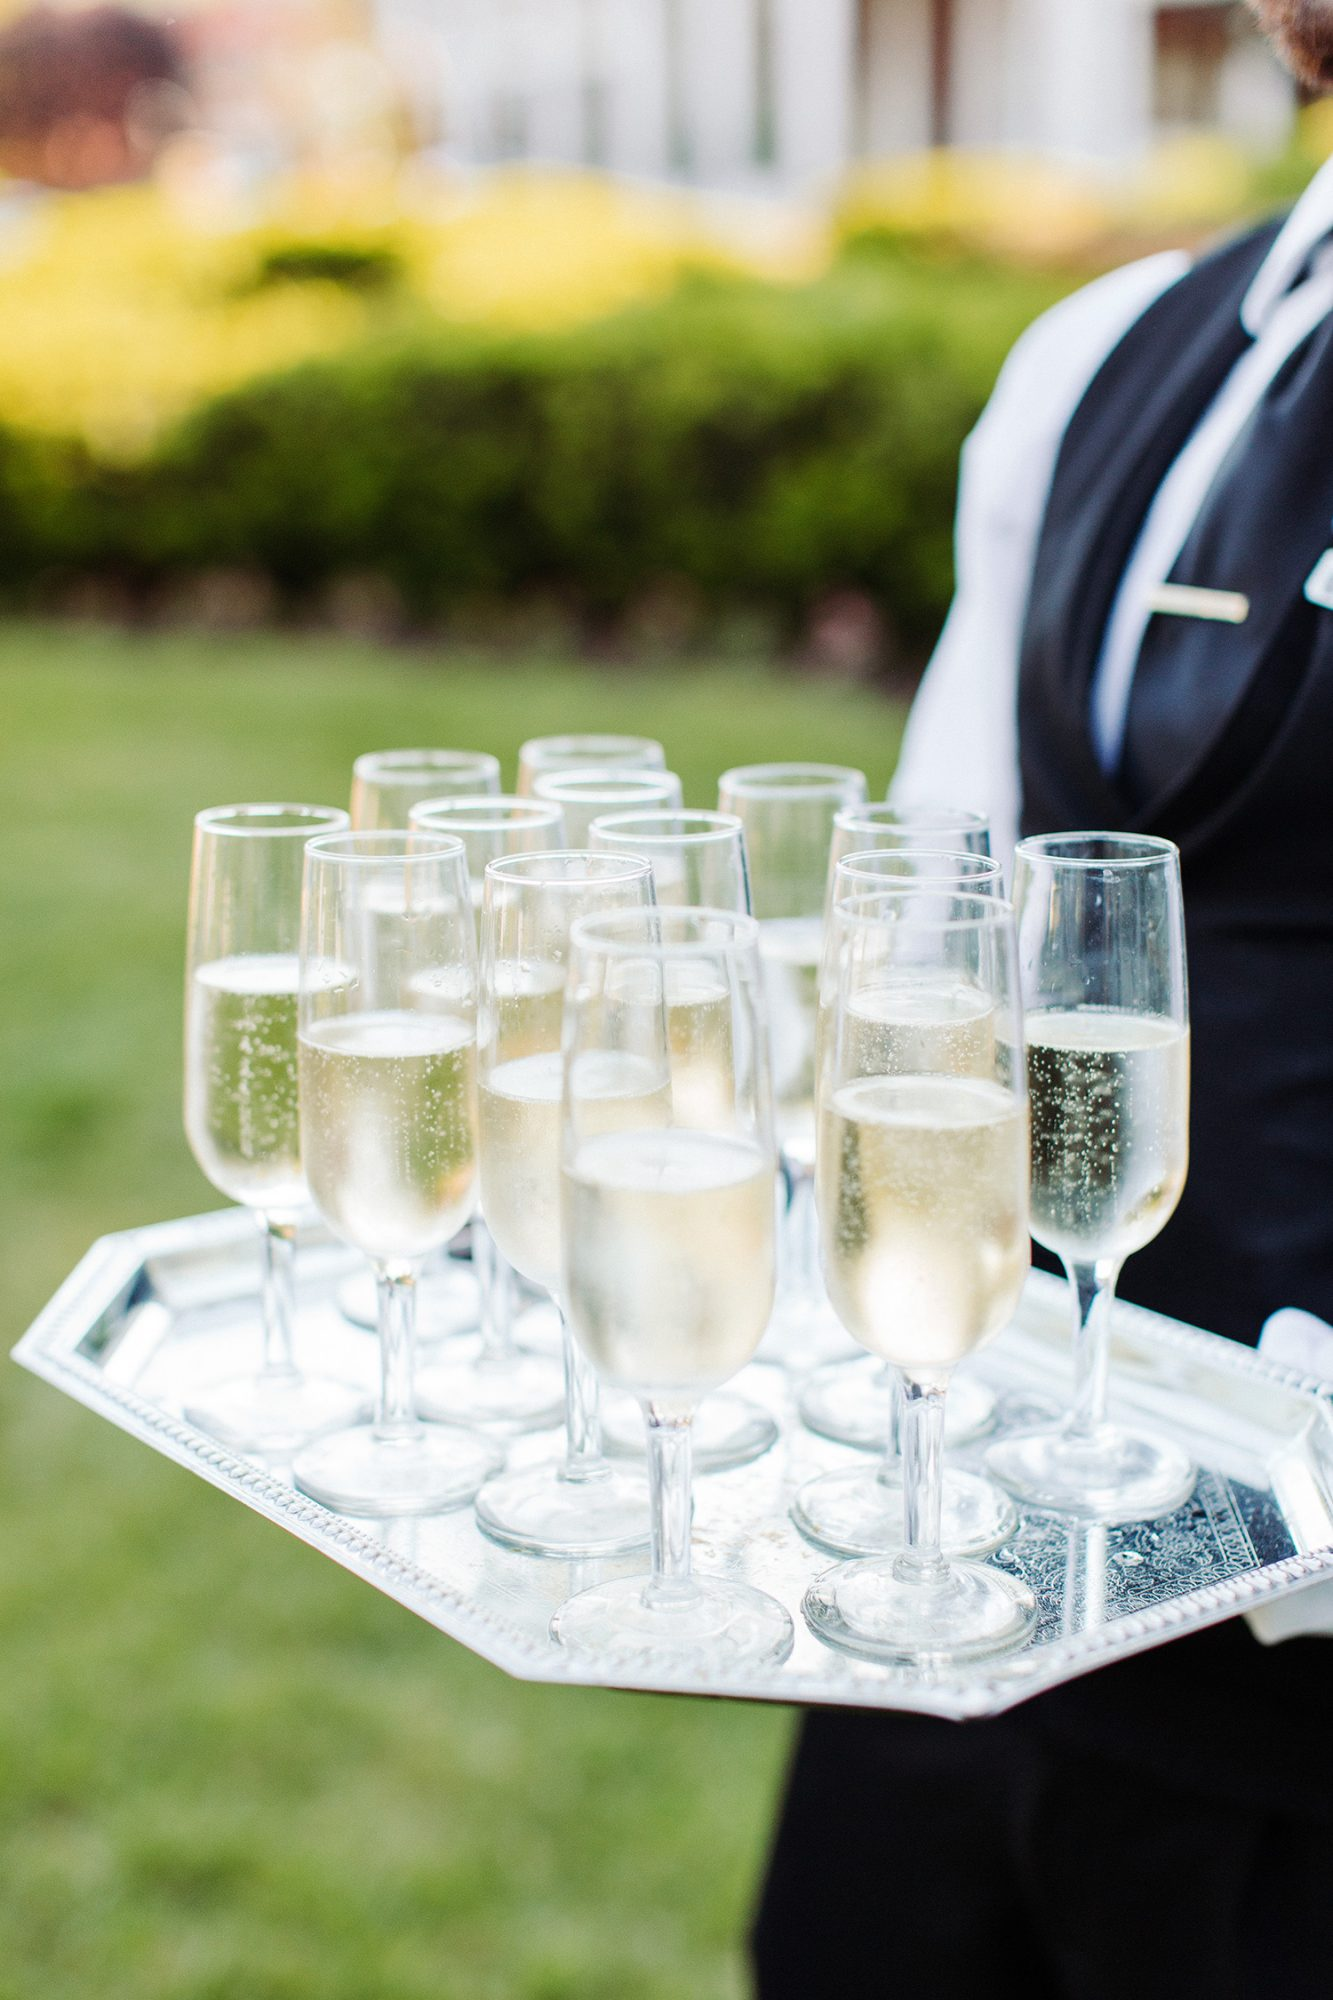 bryanna nick wedding try of champagne